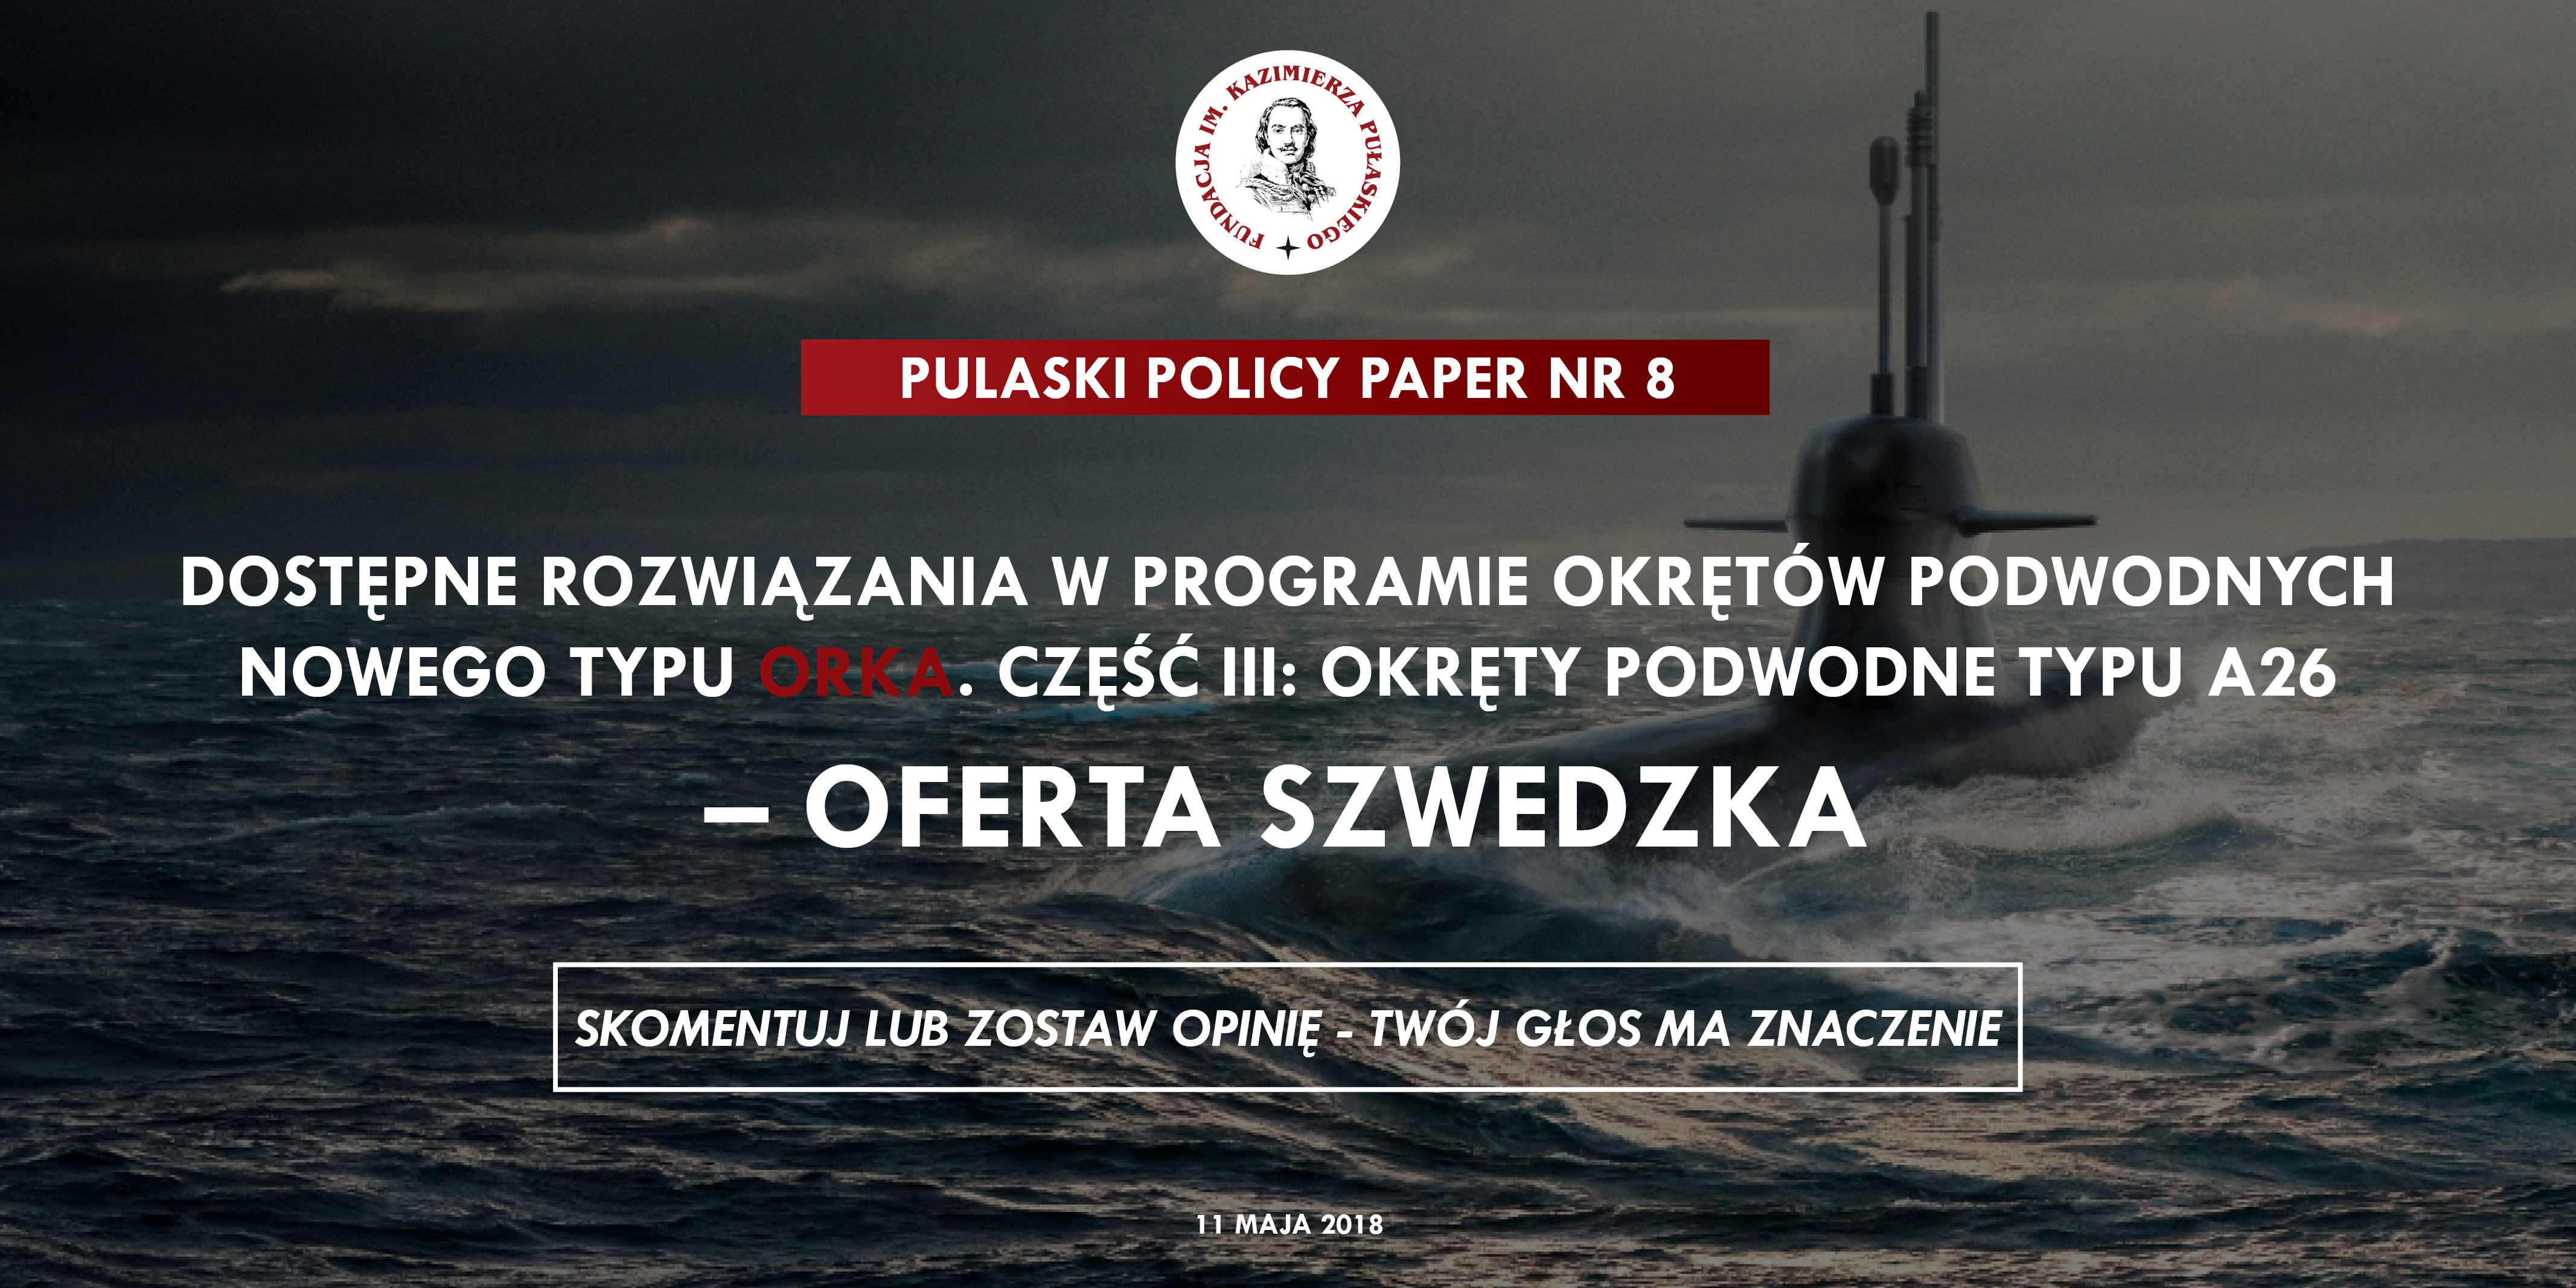 PULASKI POLICY PAPER: Poland's 'Orka' submarine programme. Part 3. The A26 submarines – Swedish Offer